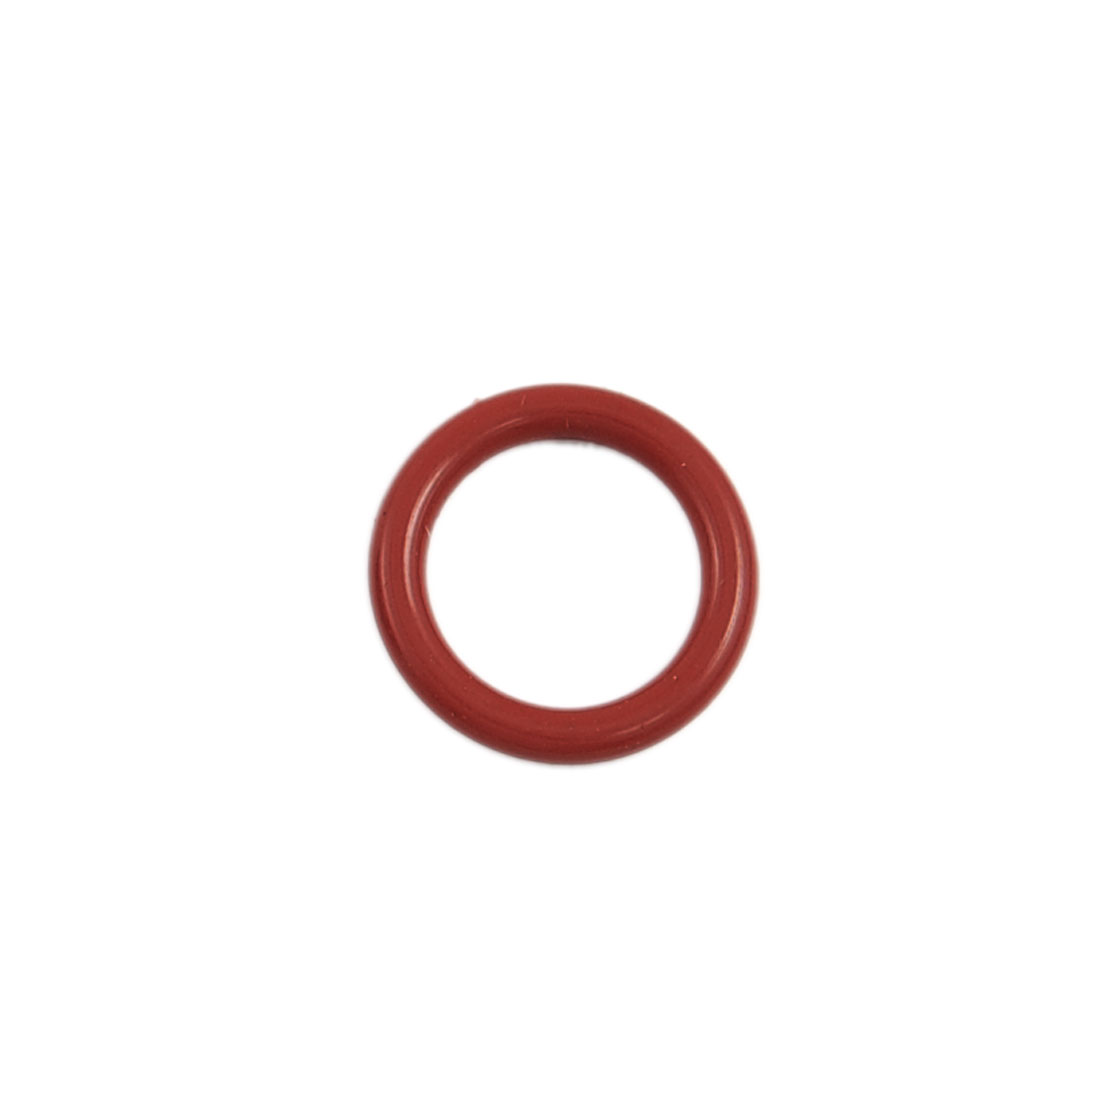 40 Pcs Brick Red Rubber 25mm x 19mm x 3mm Oil Seal O Rings Gaskets Washers